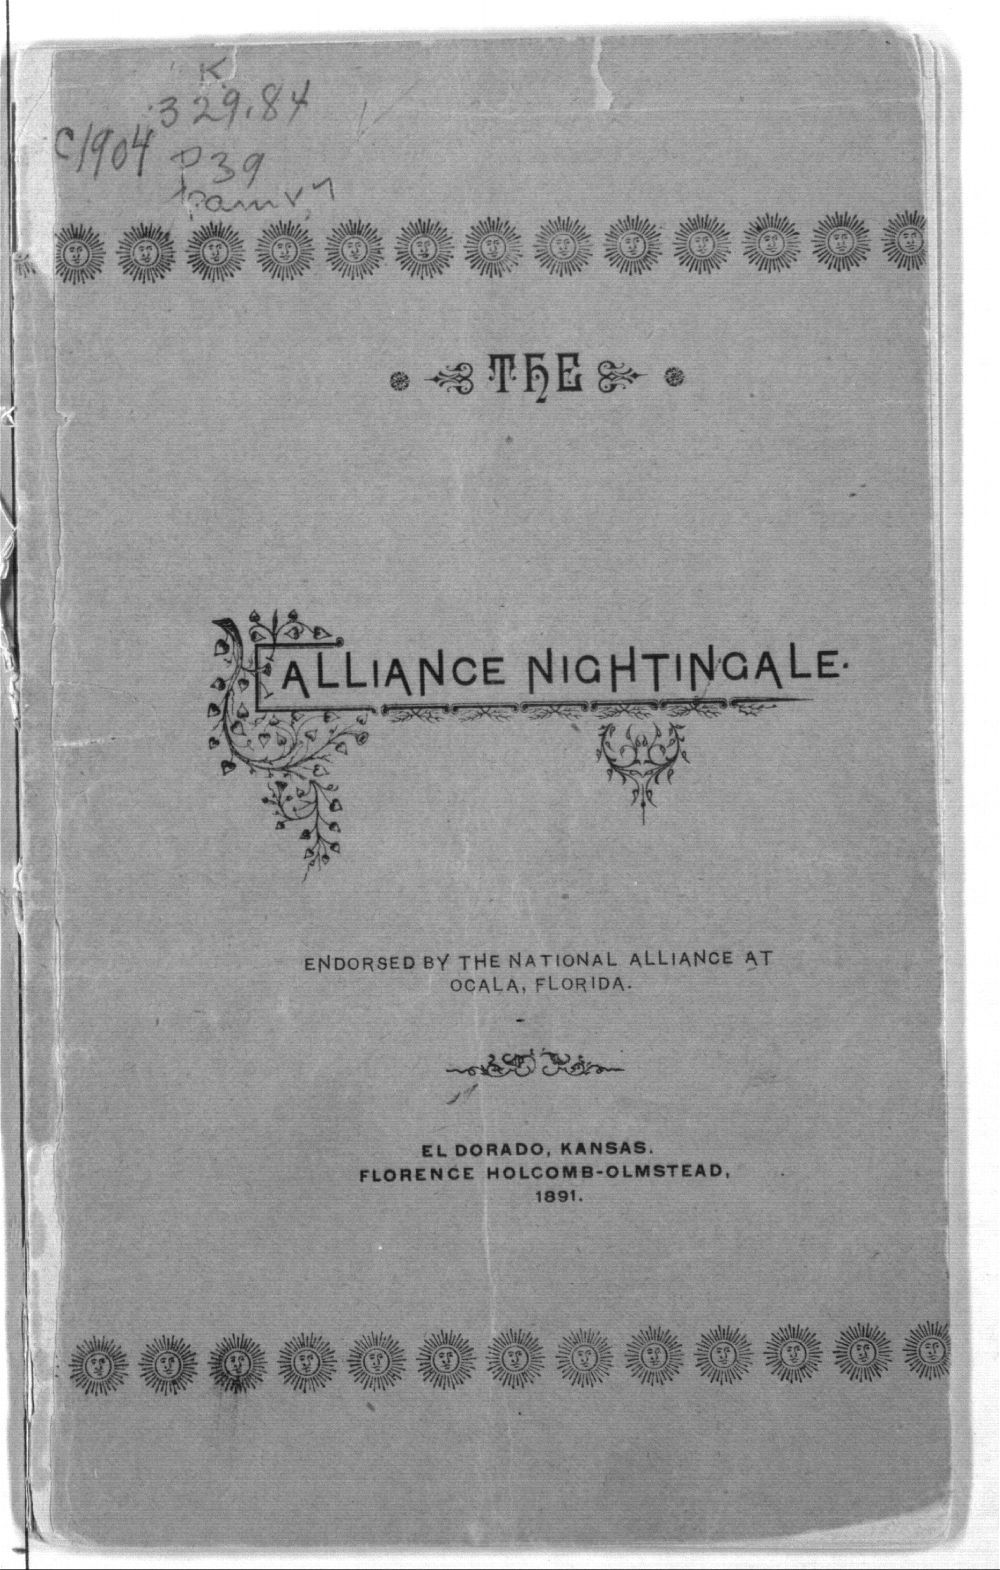 The alliance nightingale - 1